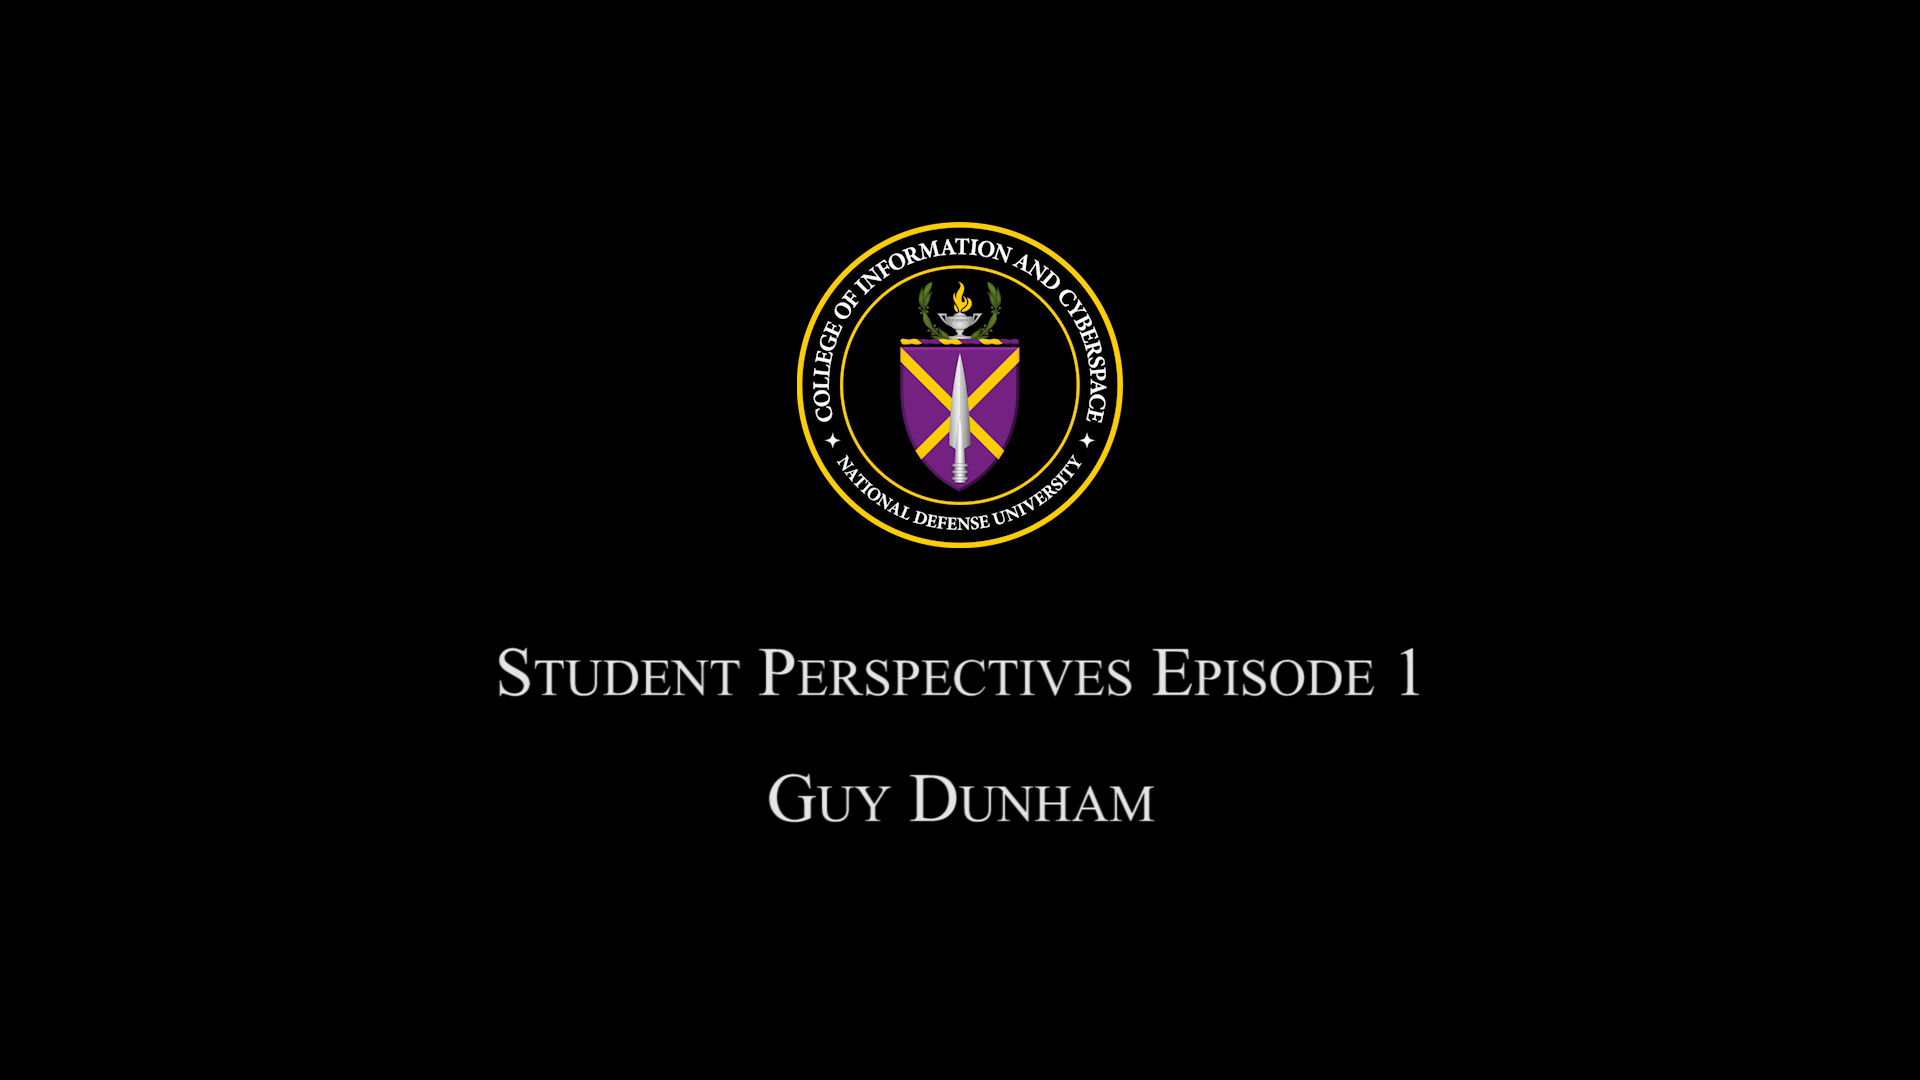 STUDENT PERSPECTIVES EPISODE 1: GUY DUNHAM